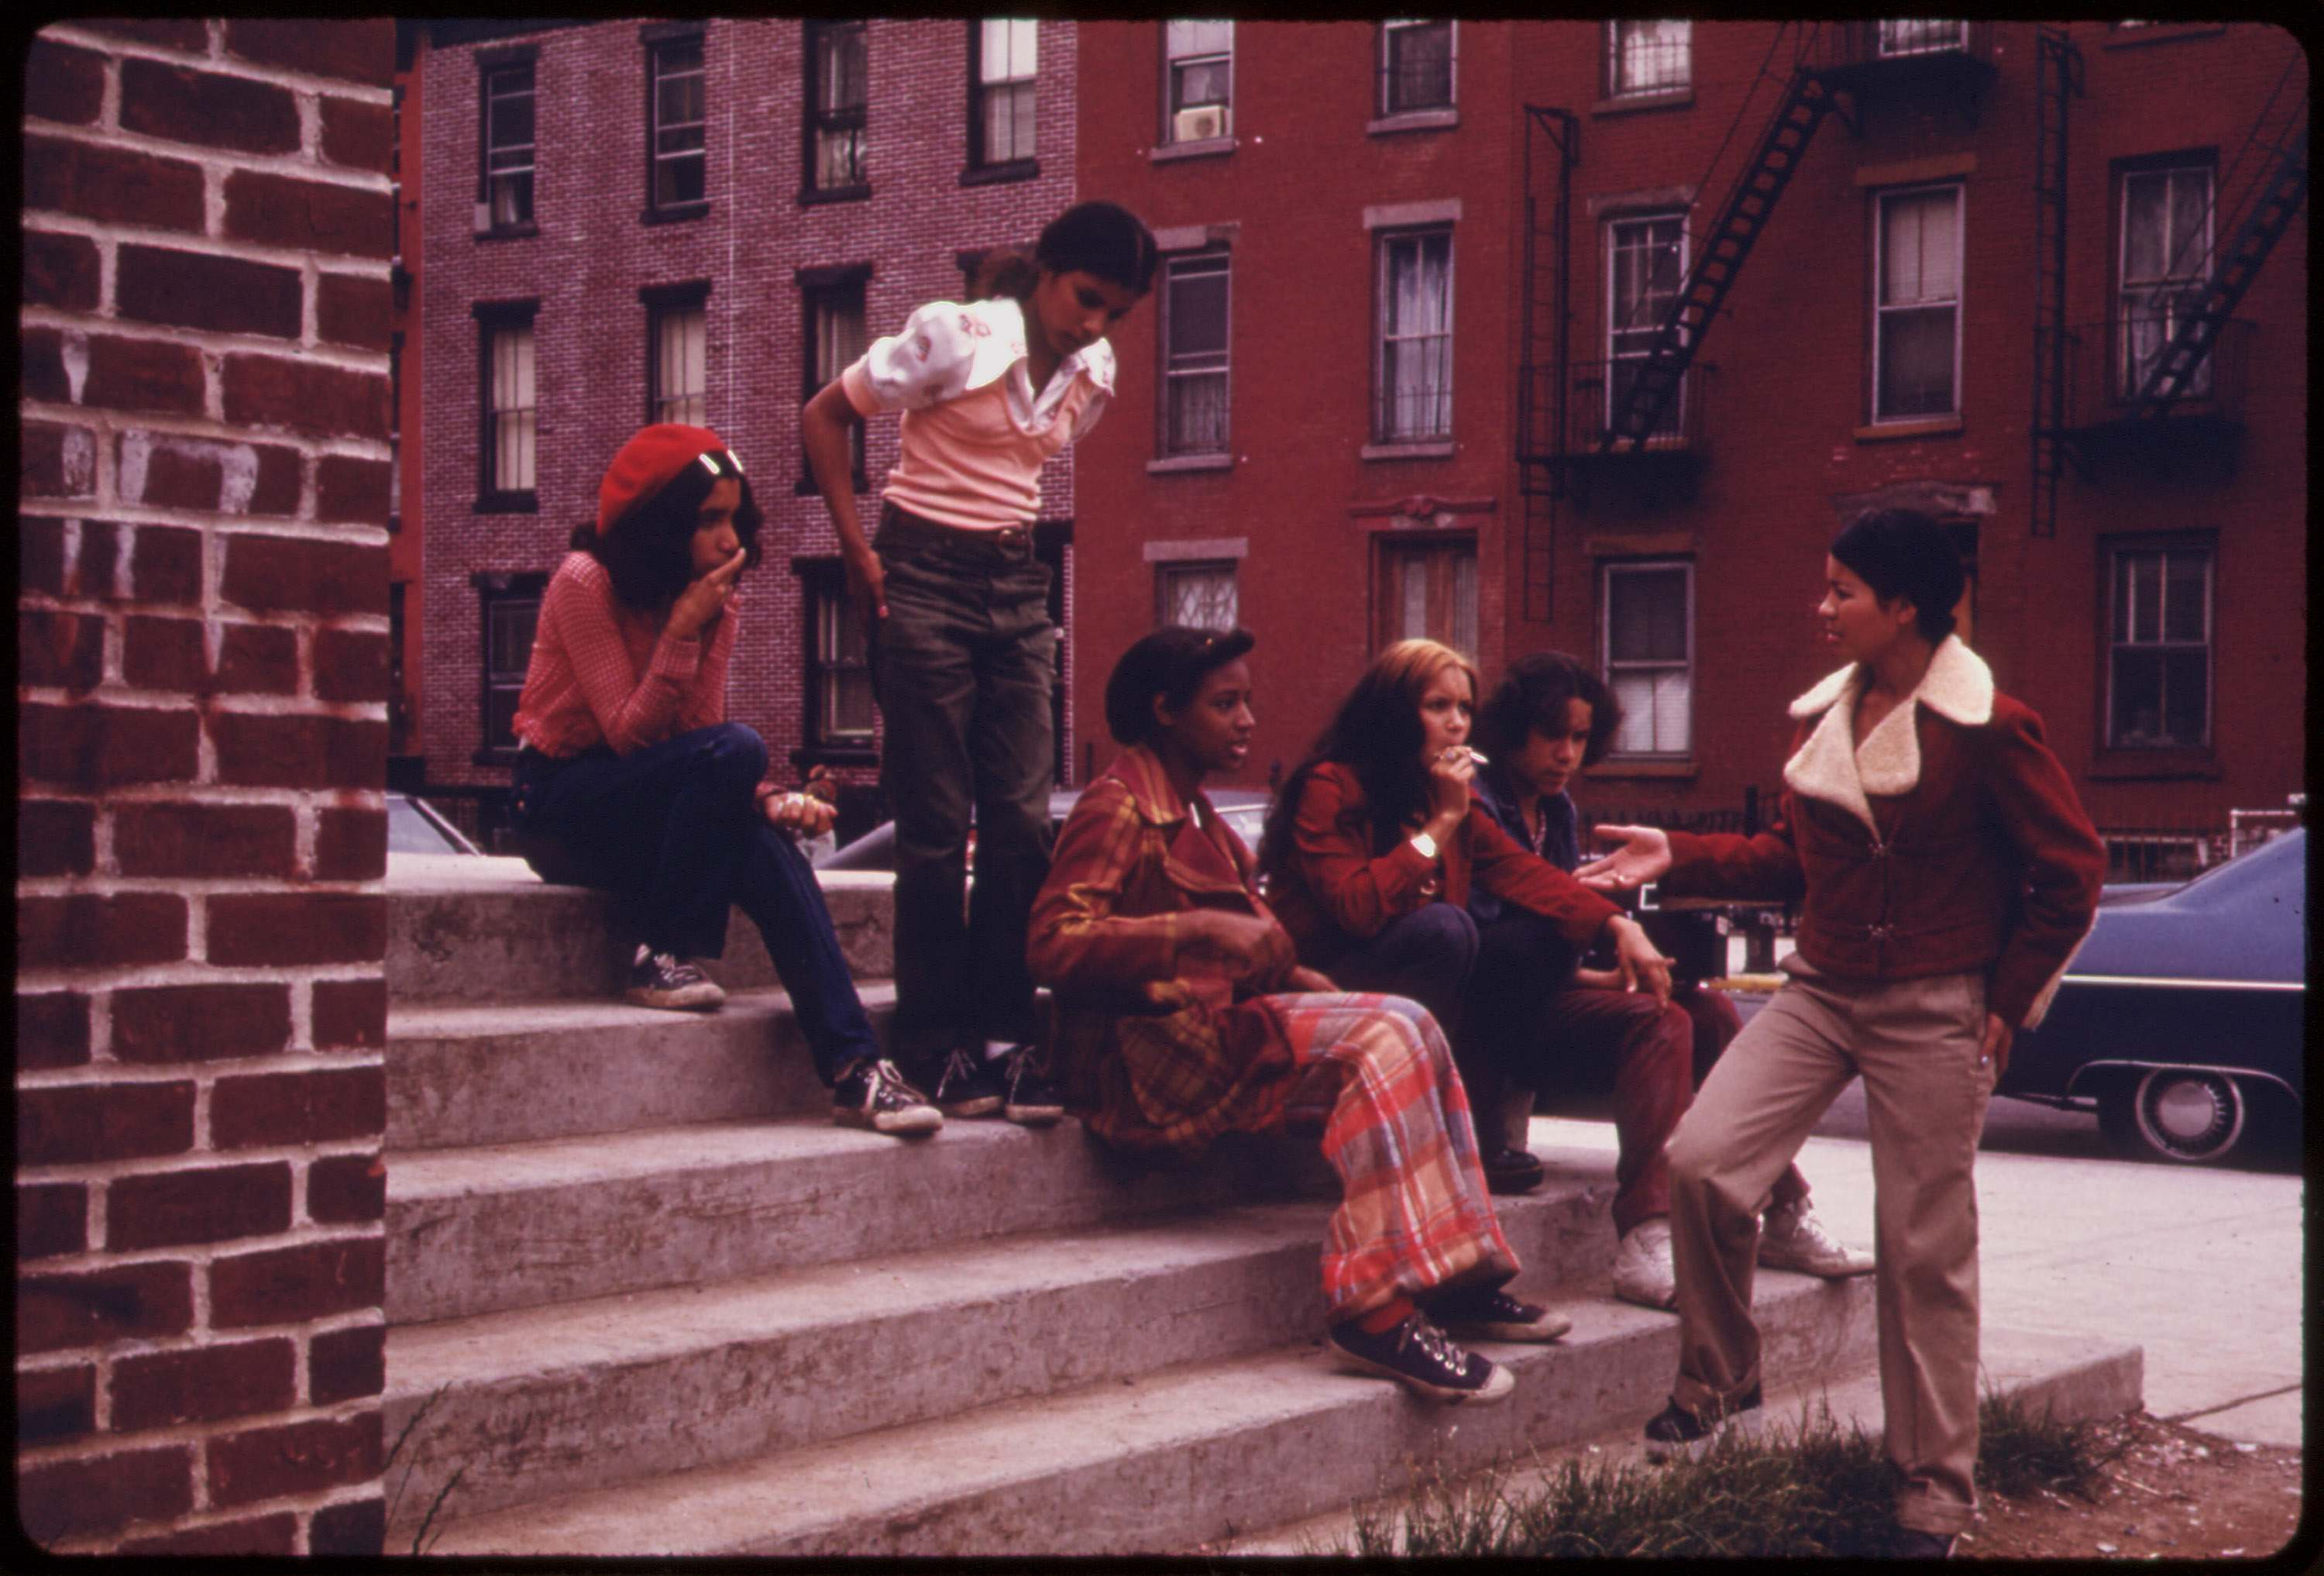 Lynch Park in Brooklyn, June 1974.